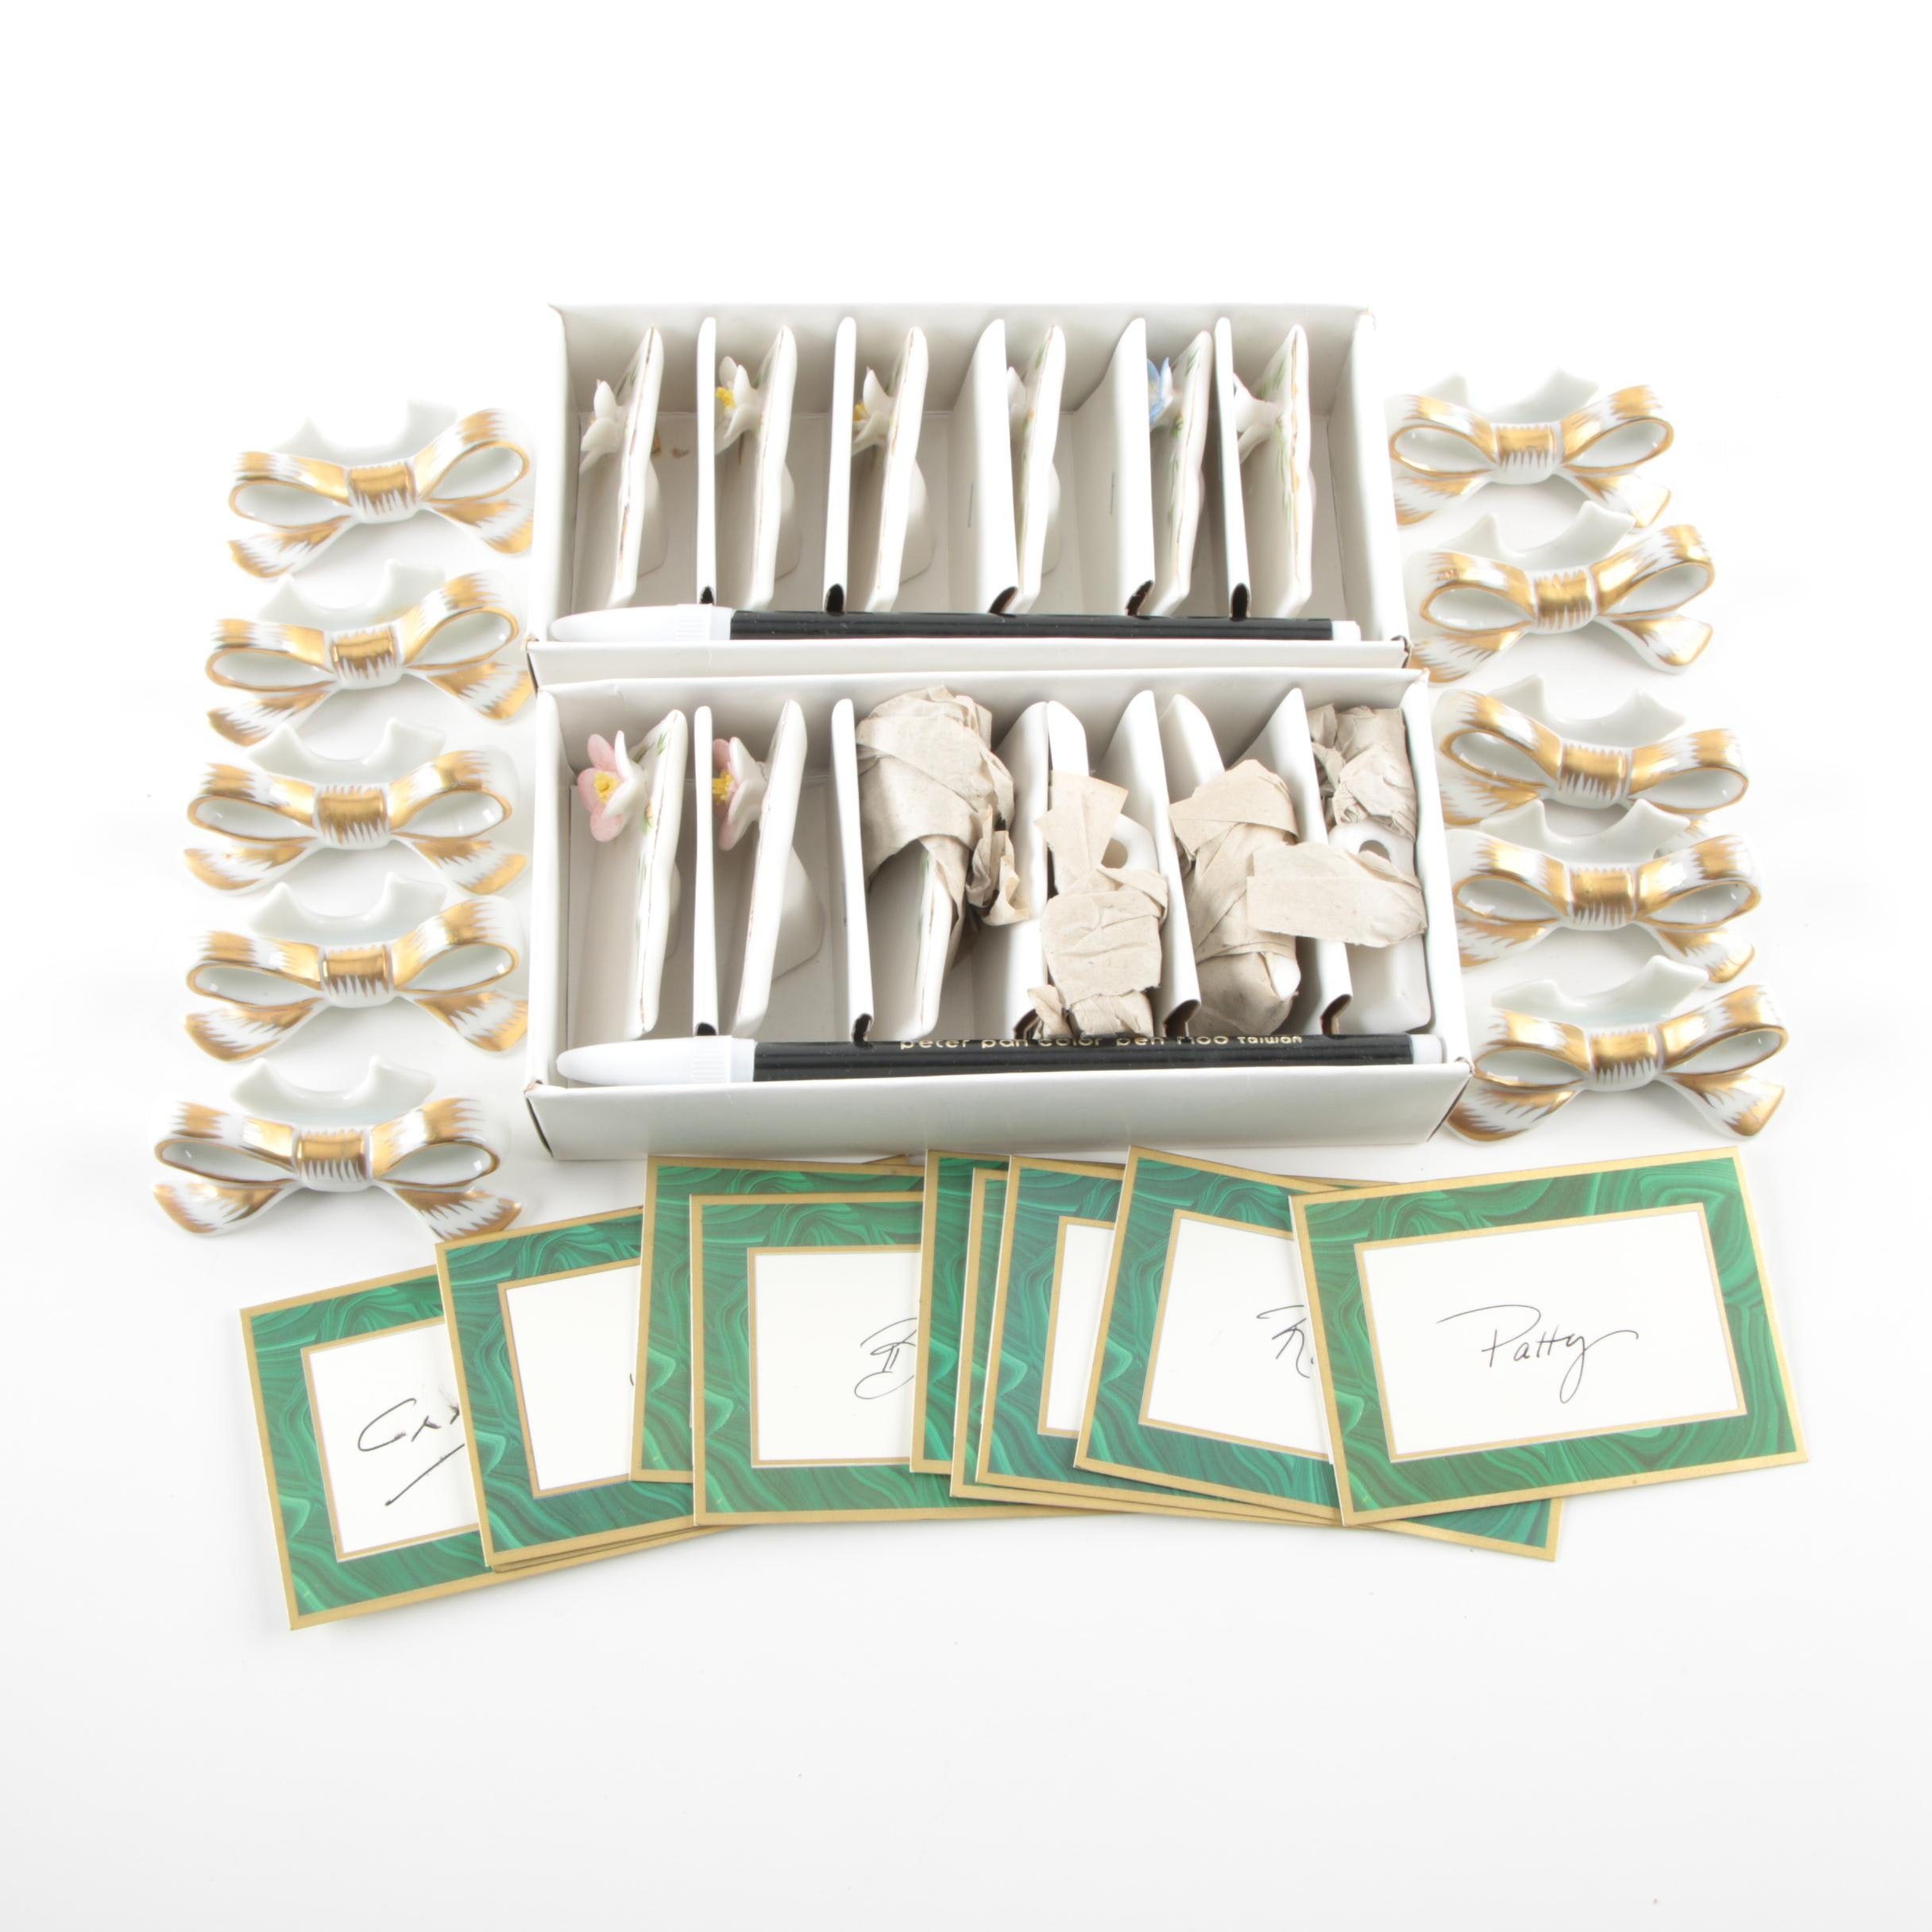 Caspari Place Cards with Porcelain Bow and Floral Place Card Holders